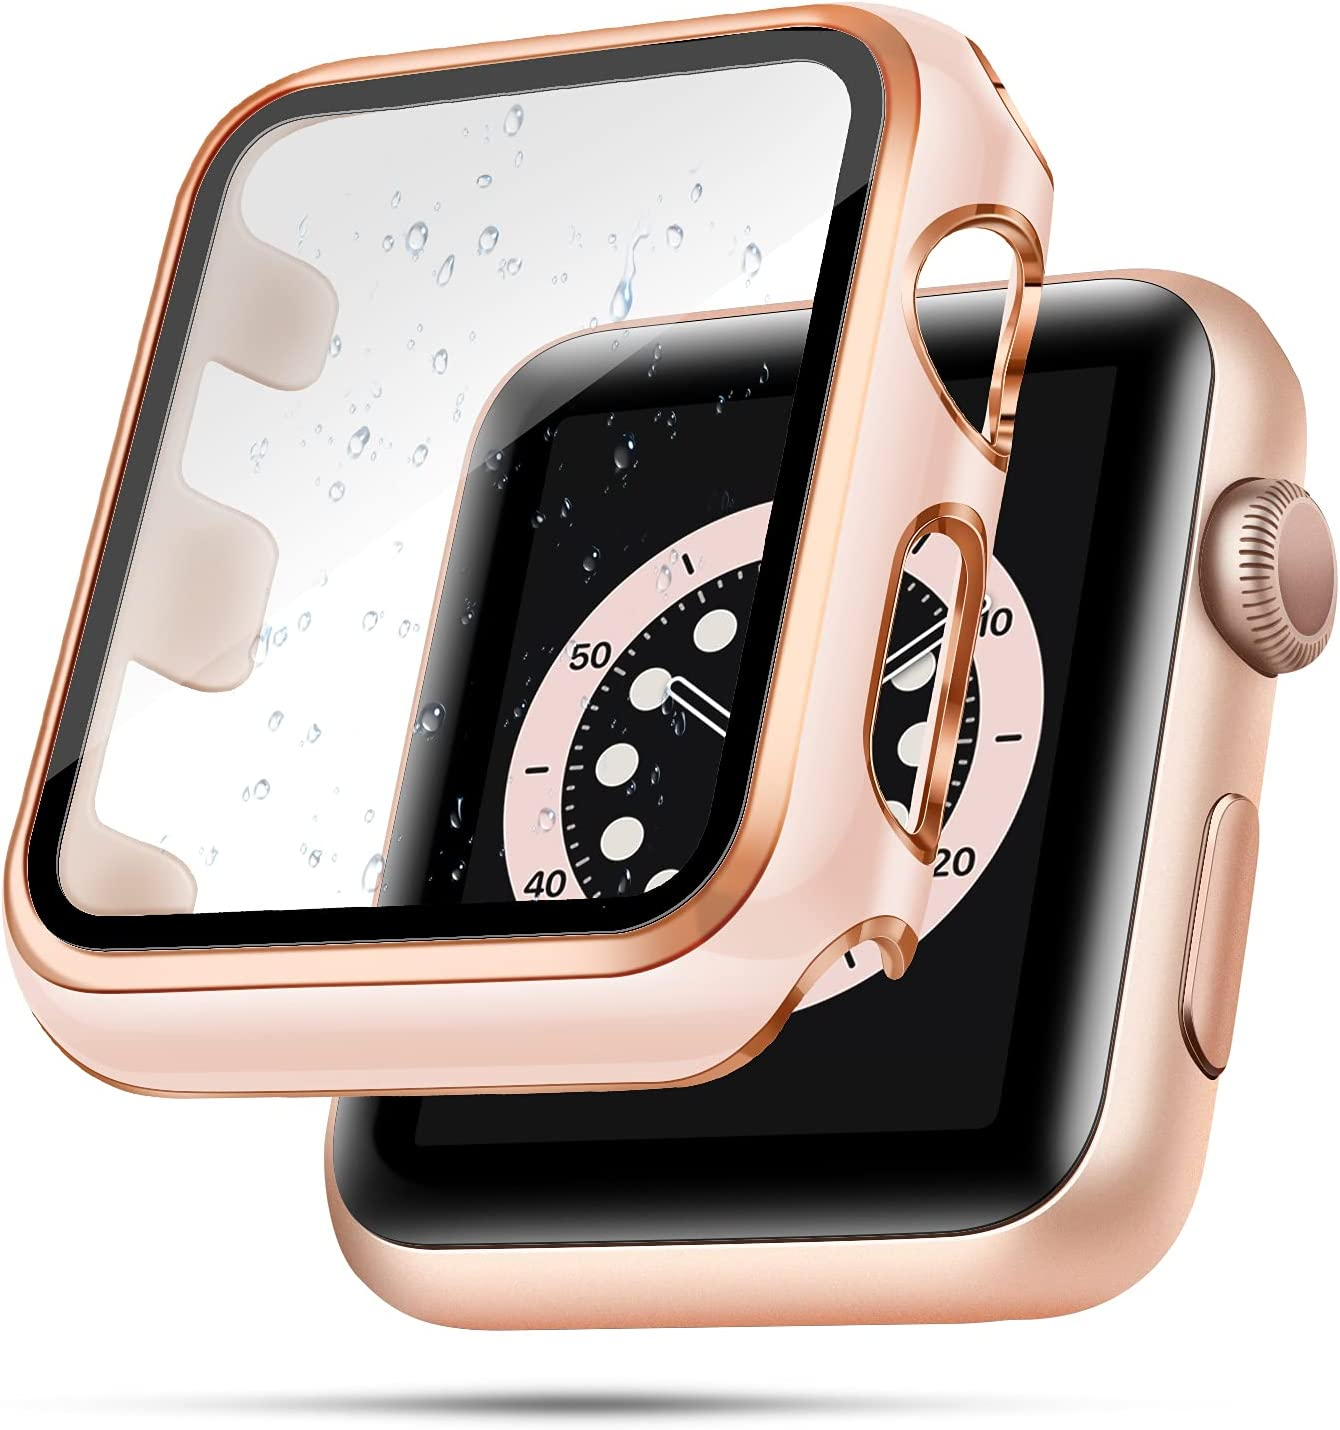 top4cus 42mm Case Compatible with Apple Watch, 42mm Bumper Built-in Tempered Glass Screen Protector, Protective PC Cover for iWatch Series SE 6 5 4 3 2 1 Women Men (42mm, Pink + Rose gold edge)